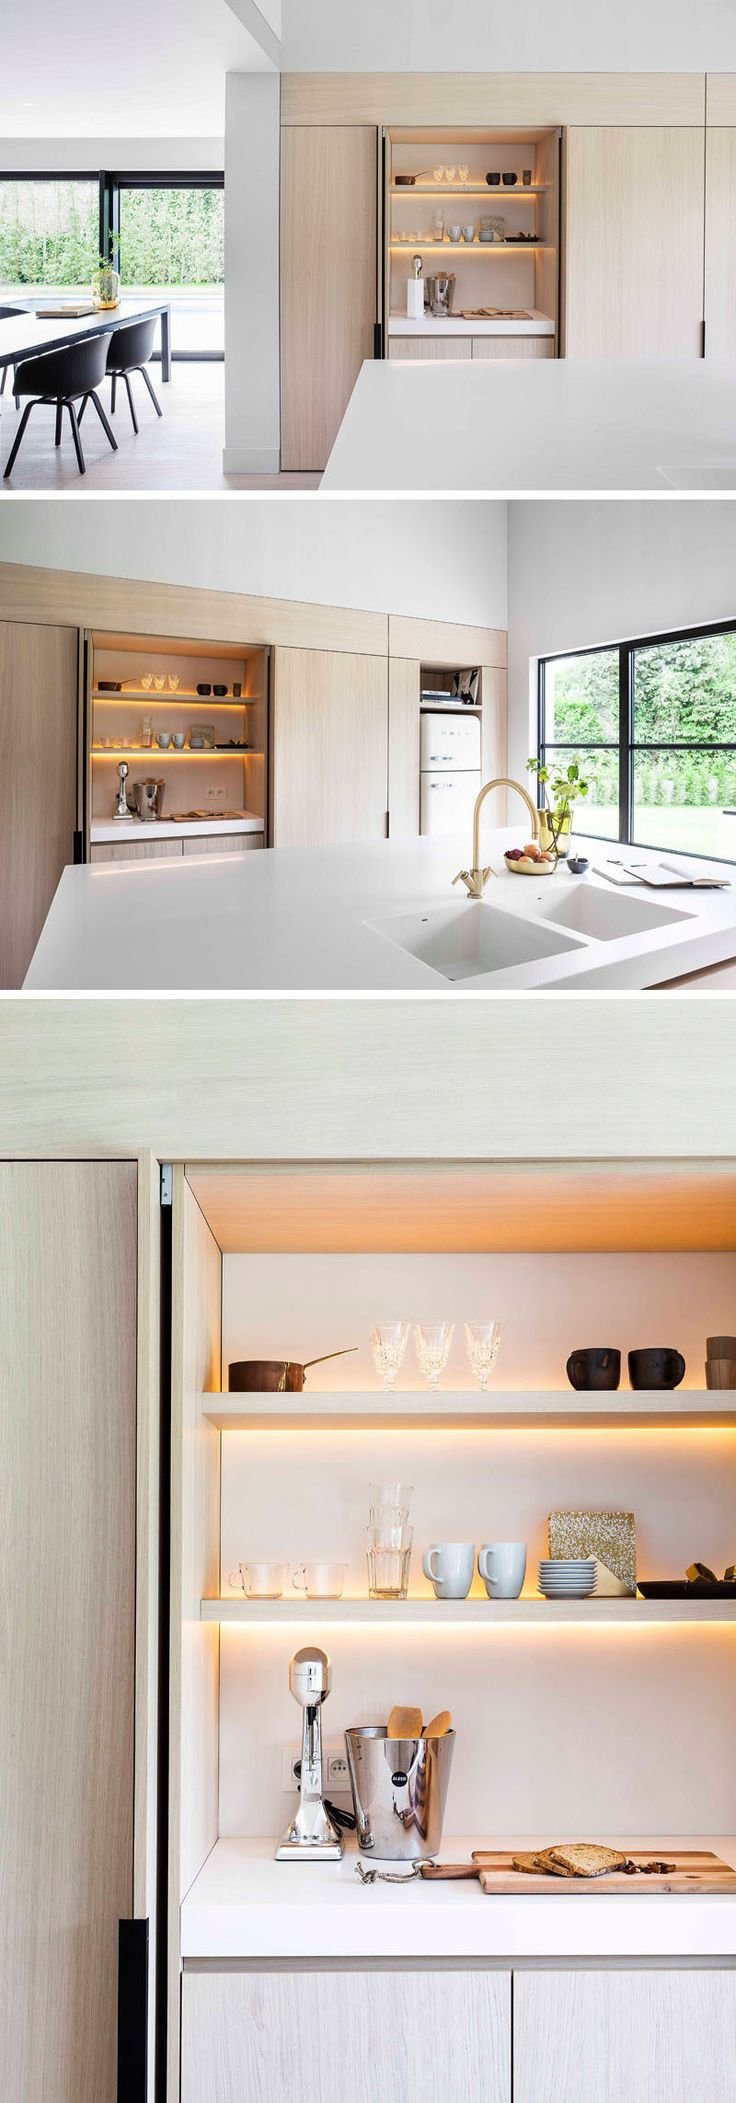 best 20 led garage lights ideas on pinterest 50 led light bar minimalist black cabinet hardware allows you to easily open the cabinet with the doors folding away within the cabinetry one design feature hidden